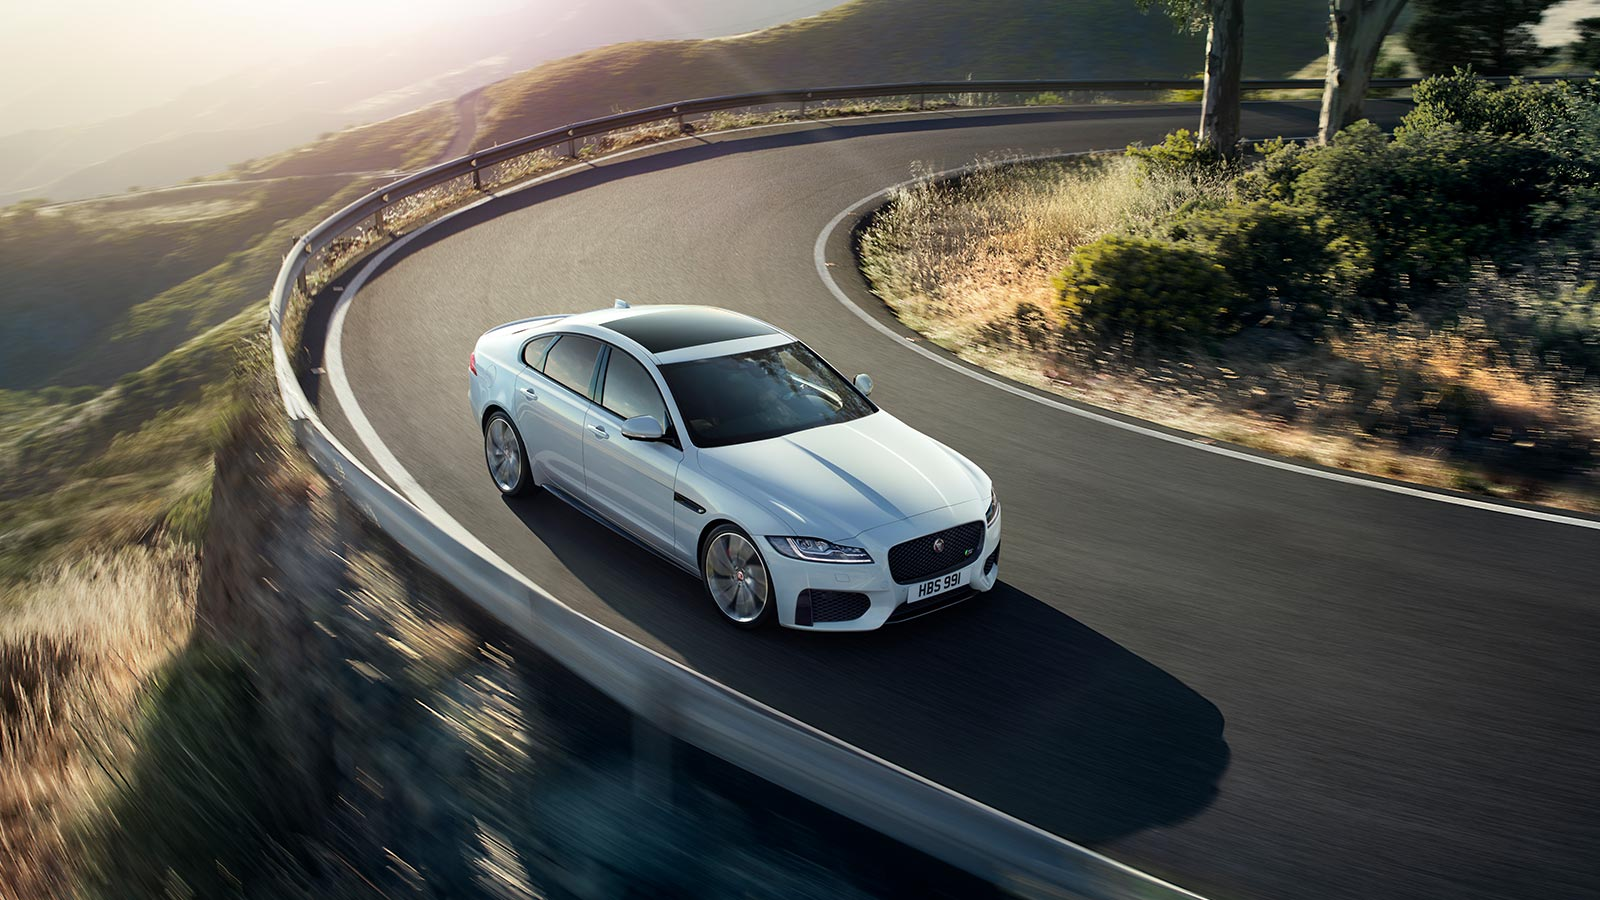 Jaguar XF 2.0d (180) Chequered Flag SPECIAL EDITIONS image 16